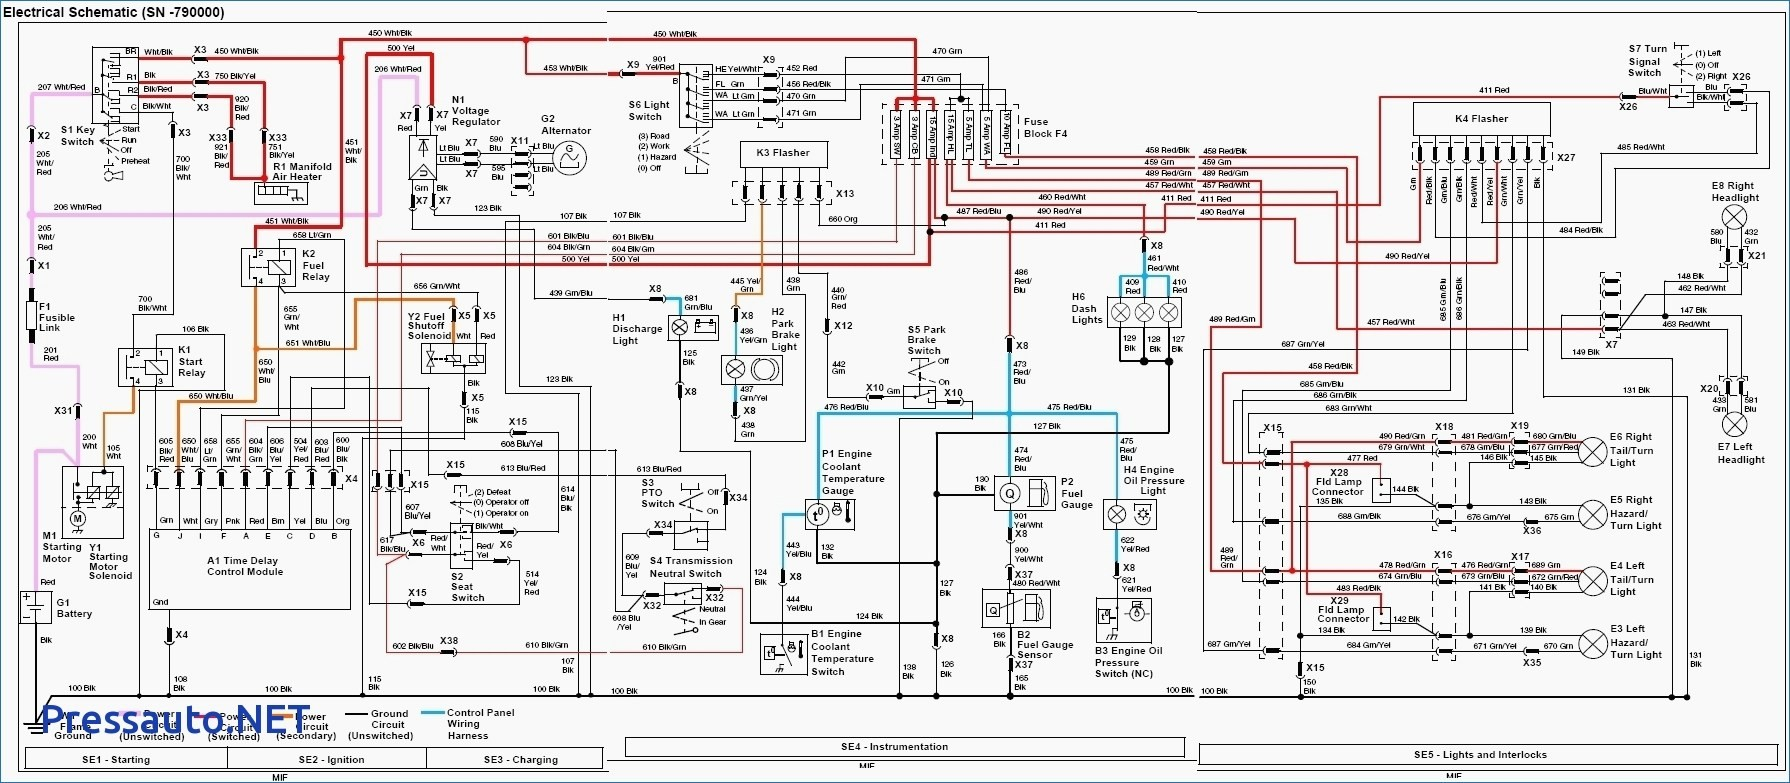 Tzh152fmh Wiring Diagram Diagrams. Tzh152fmh Wiring Diagram Library Industrial Electrical Diagrams Jd 345. Wiring. Tzh152fmh Wiring Diagram Eazy At Scoala.co